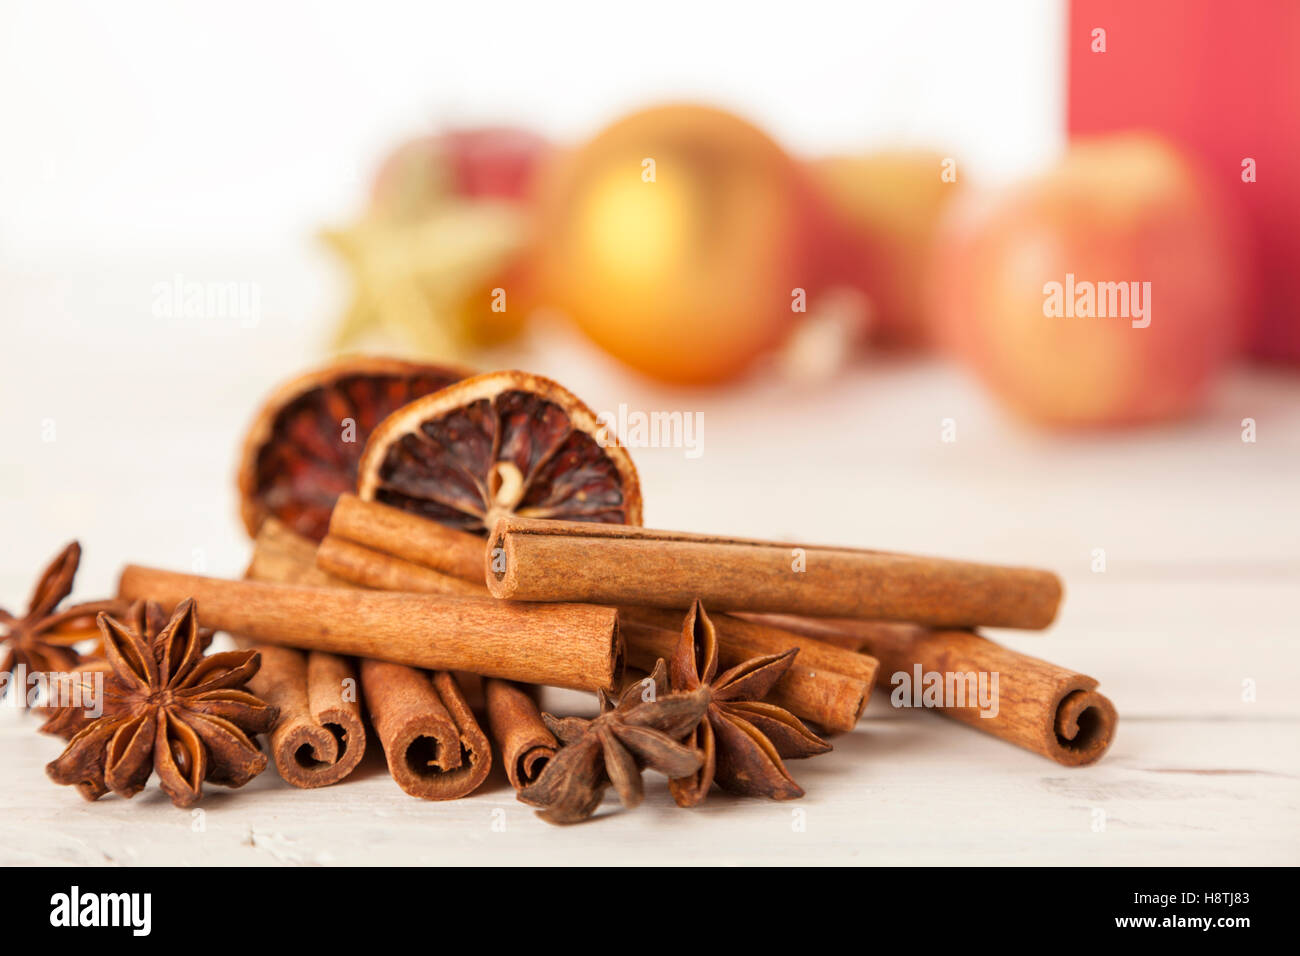 heap of cinnamon quills, star anise and dried orange slices, Christmas decoration out of focus in background - Stock Image